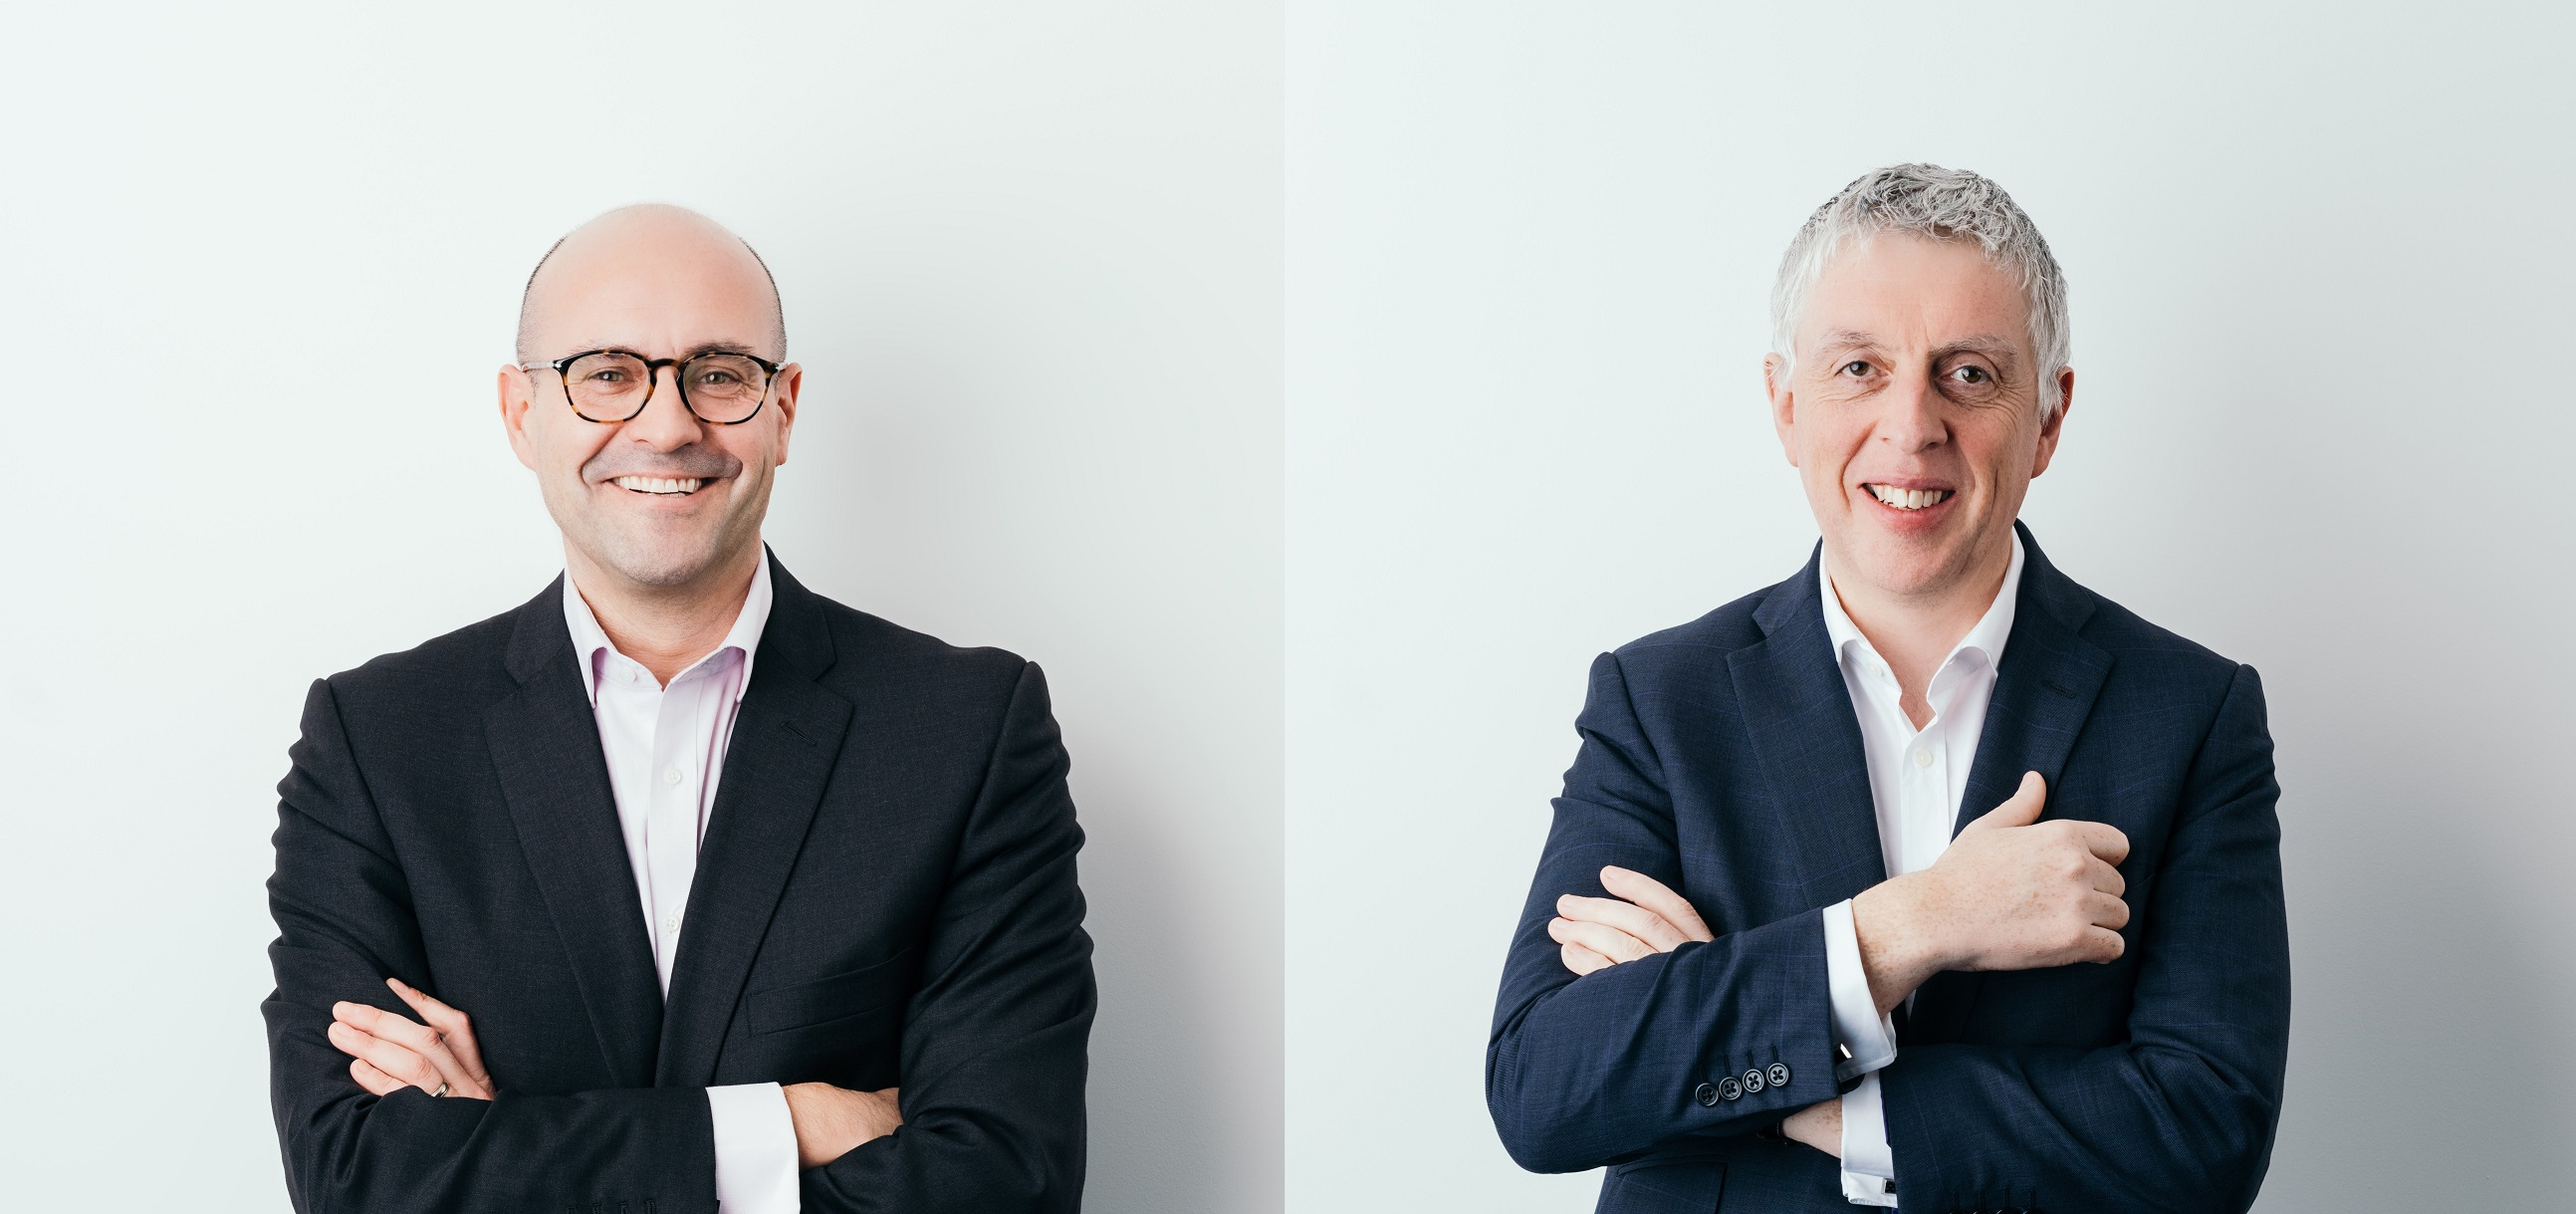 IQ-EQ's Mark Pesco and Kevin O'Connell named among 50 Most Influential